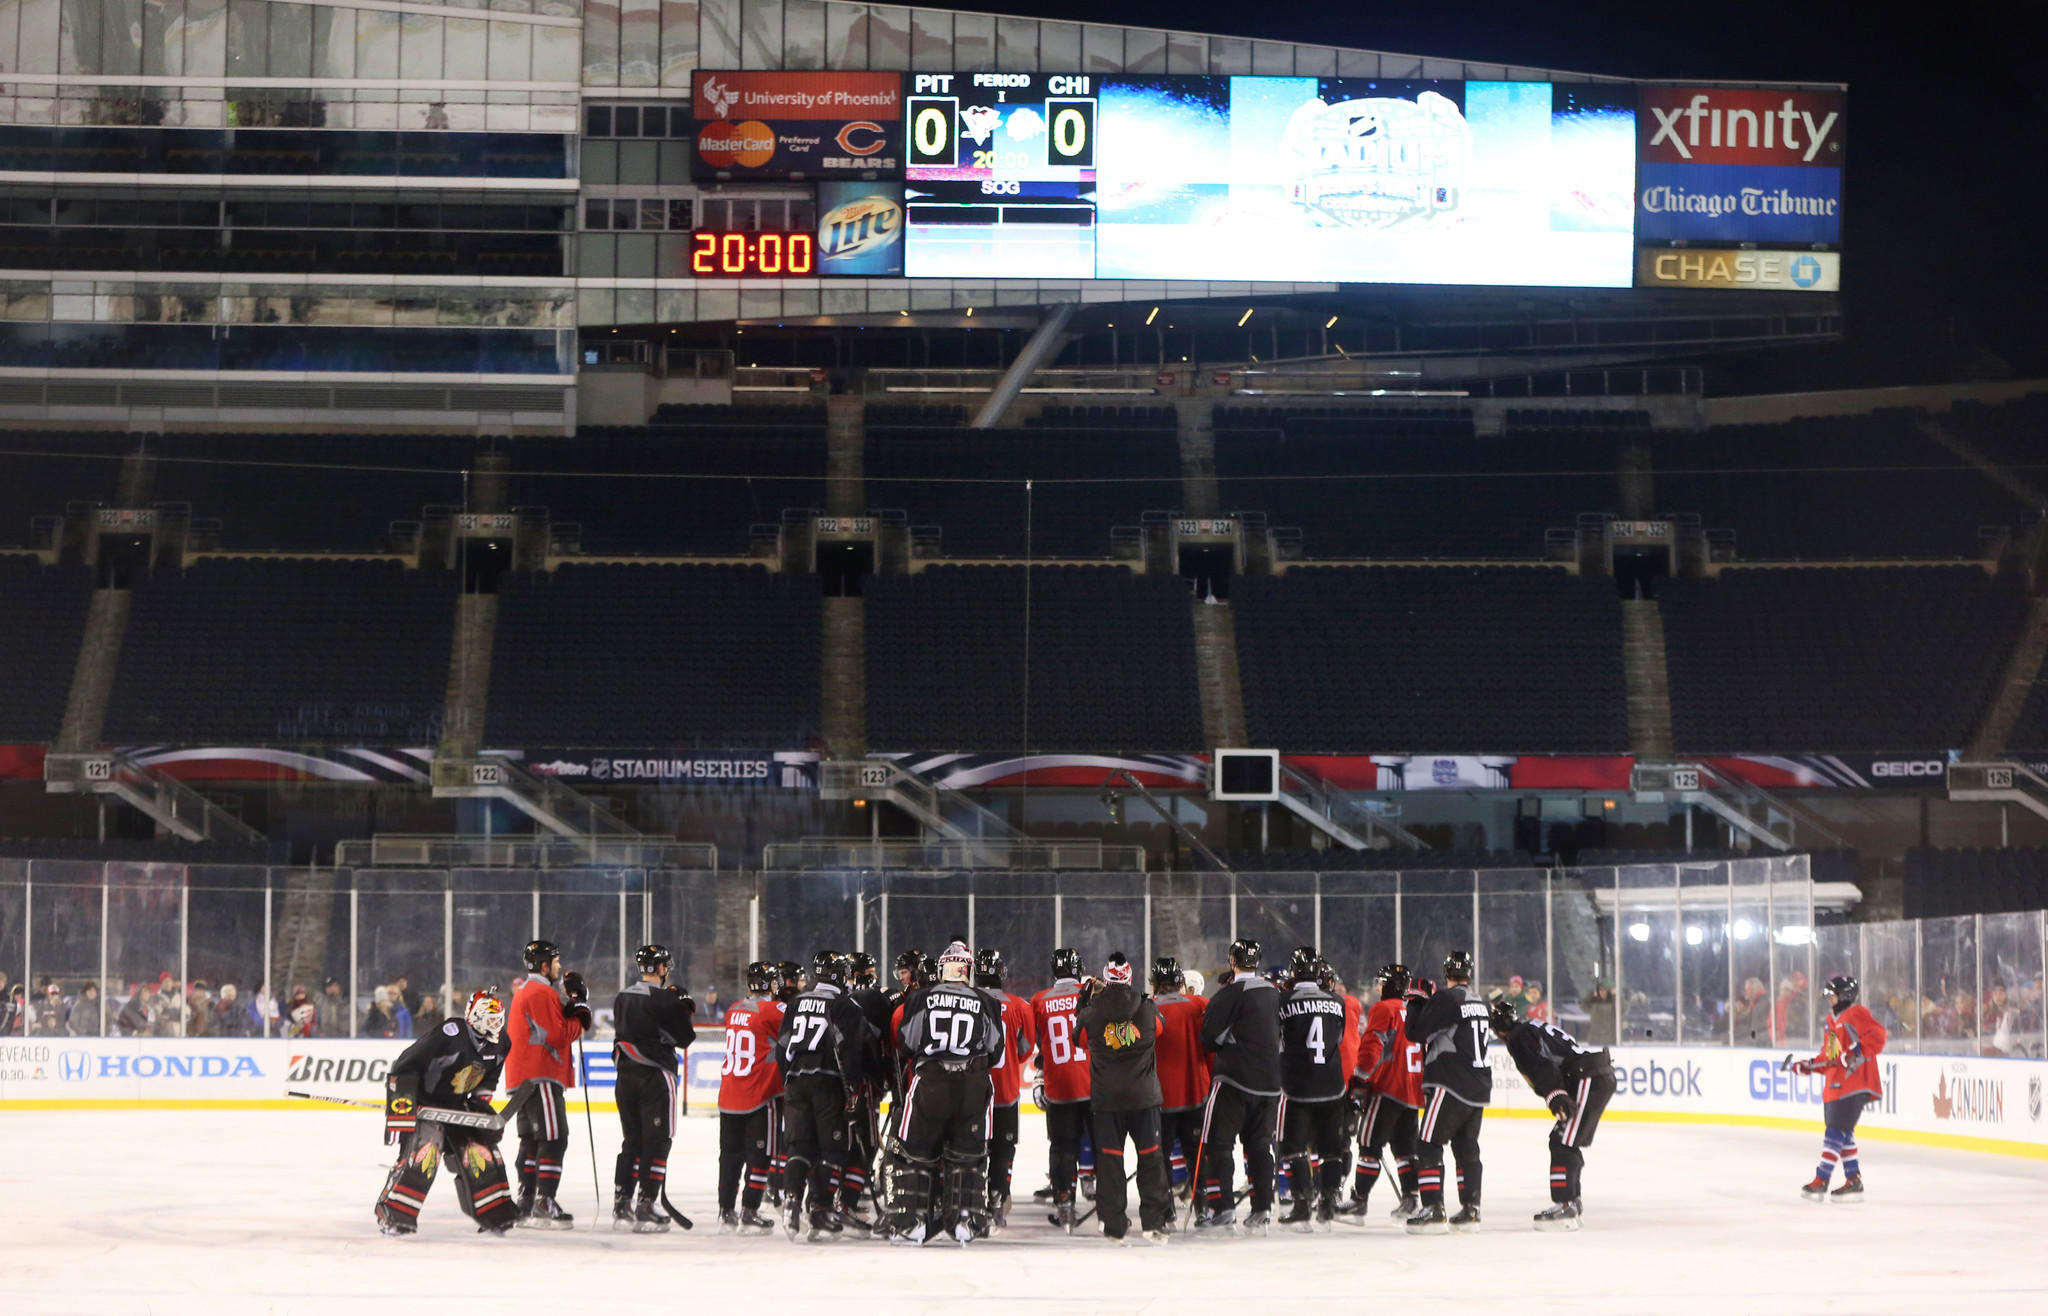 The Chicago Blackhawks come together at center ice during a practice at Soldier Field in Chicago on Friday, February 28, 2014. The Blackhawks will be playing the Pittsburgh Penguins in the NHL's Stadium Series on Saturday.